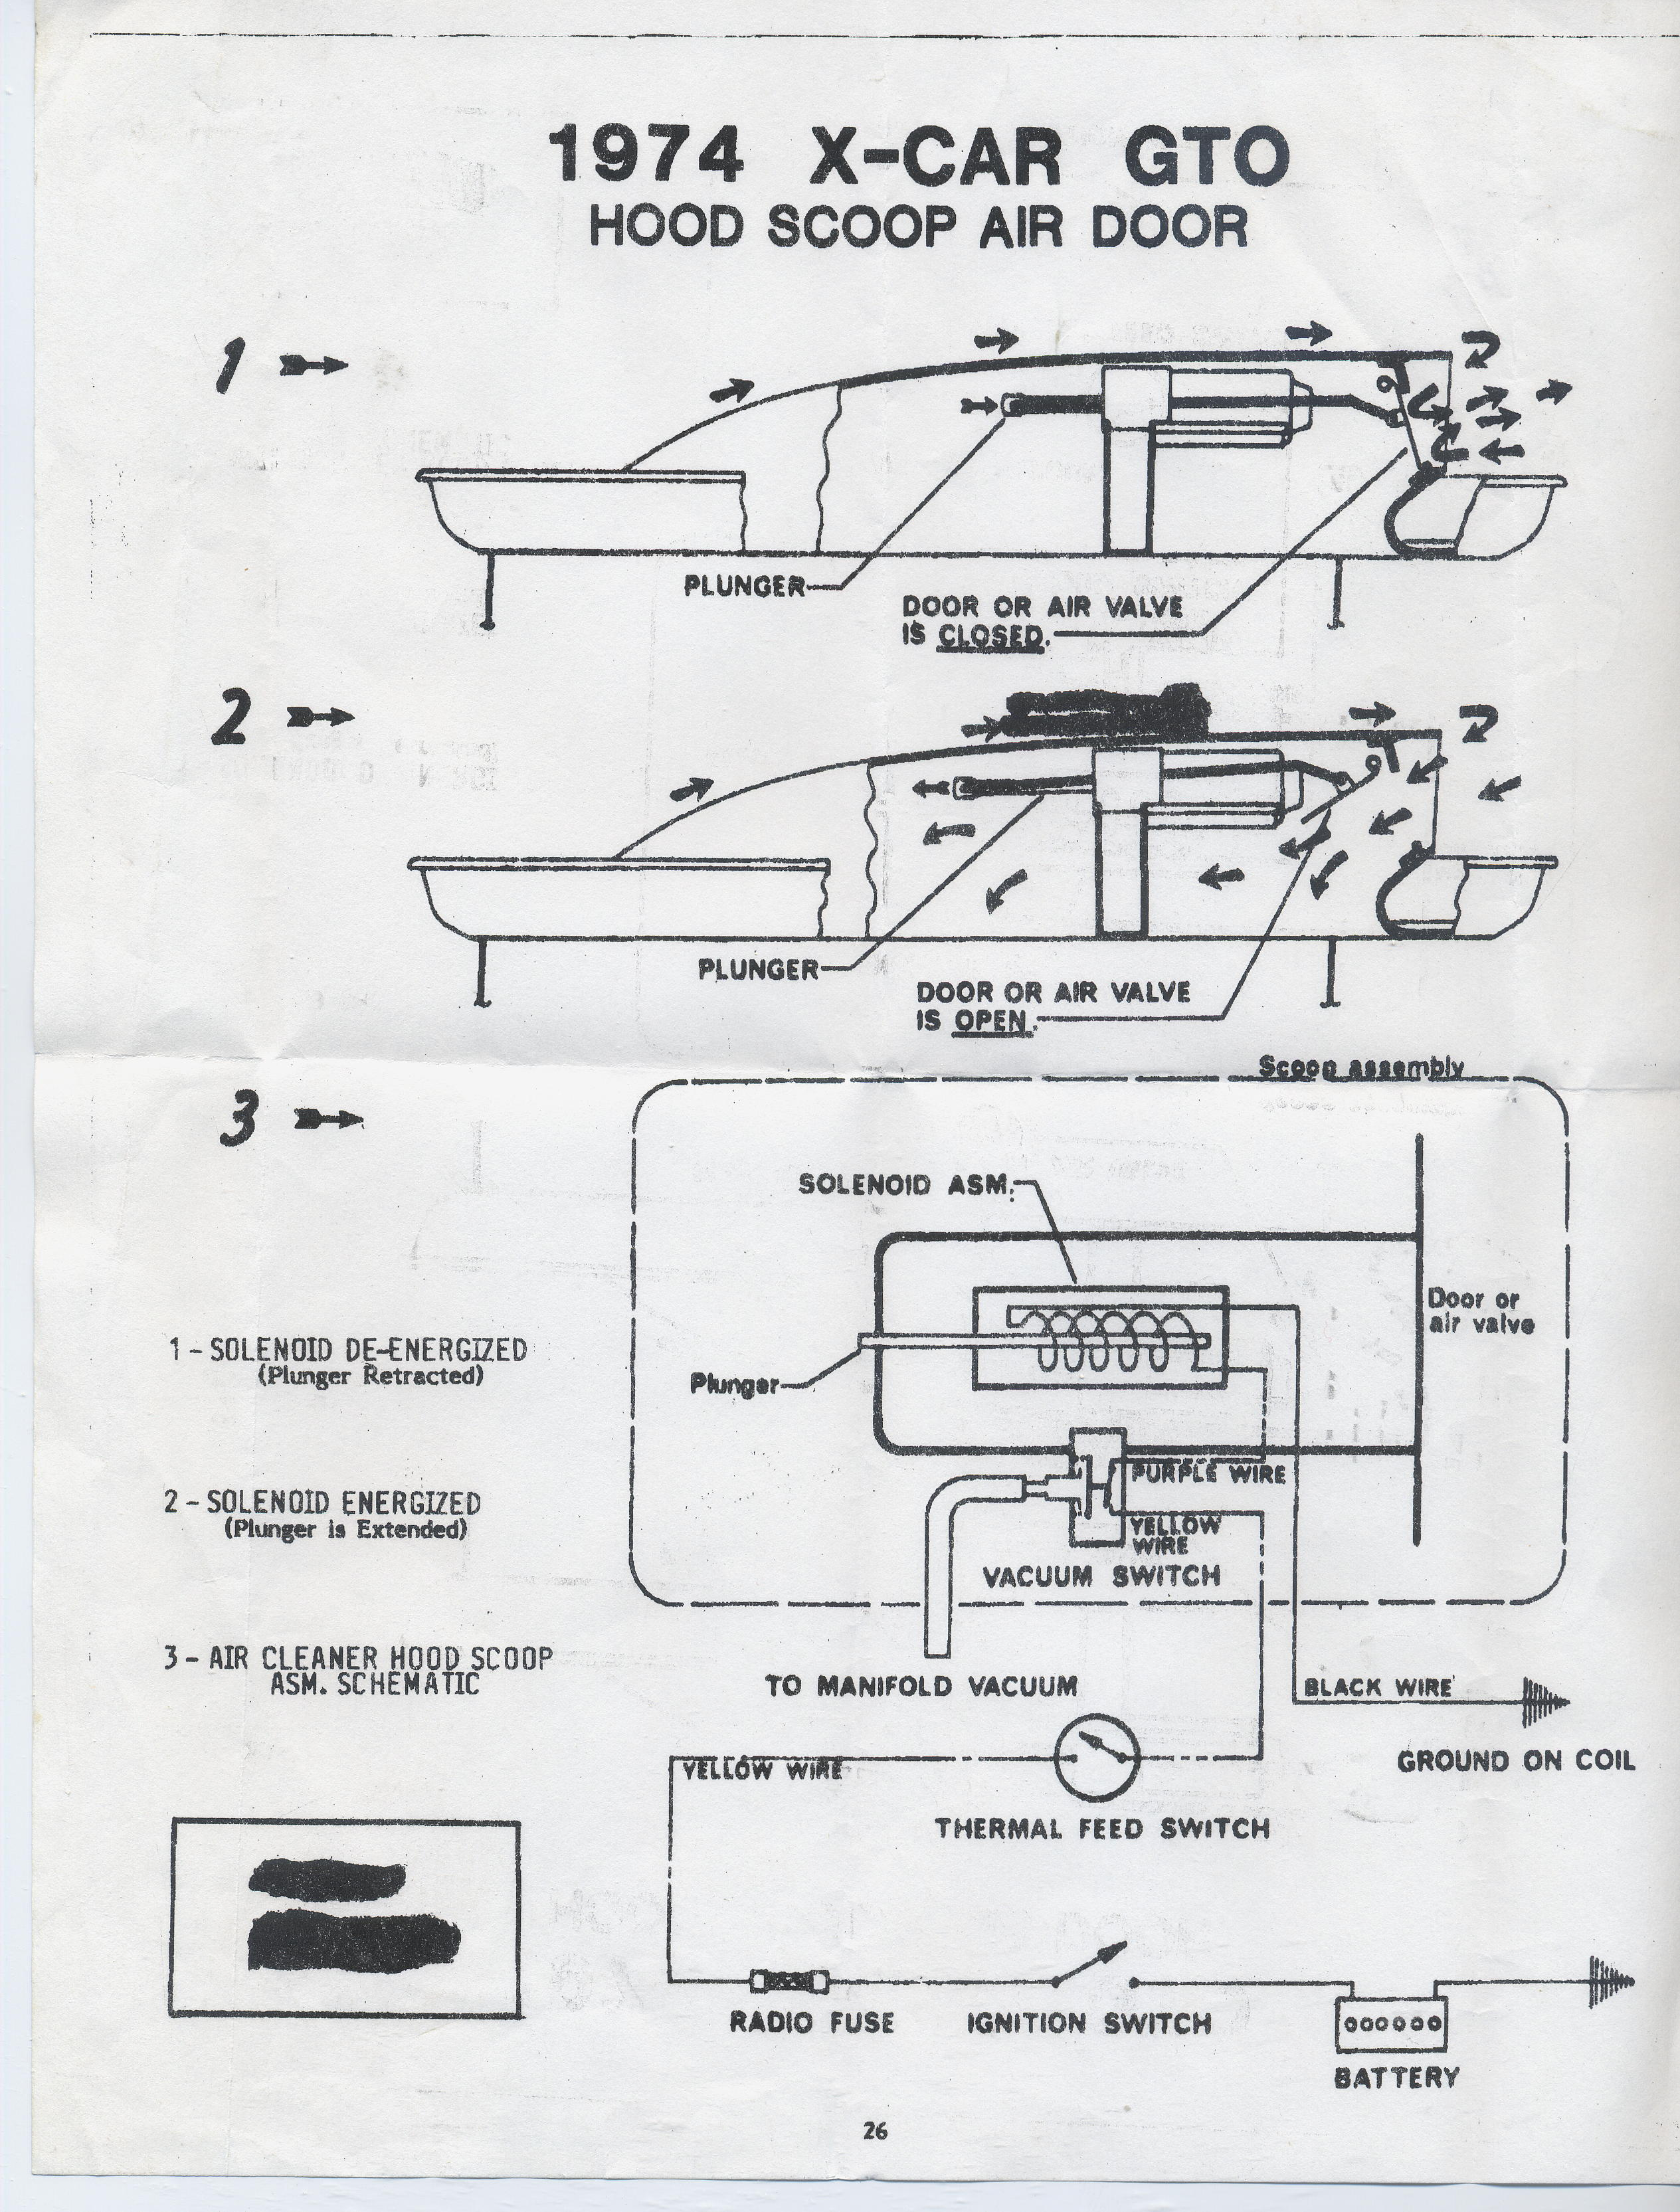 1970 Pontiac Ventura Wiring Diagram Electrical Diagrams 1973 Grandville Engine 1974 Gto Auto U2022 Beaumont